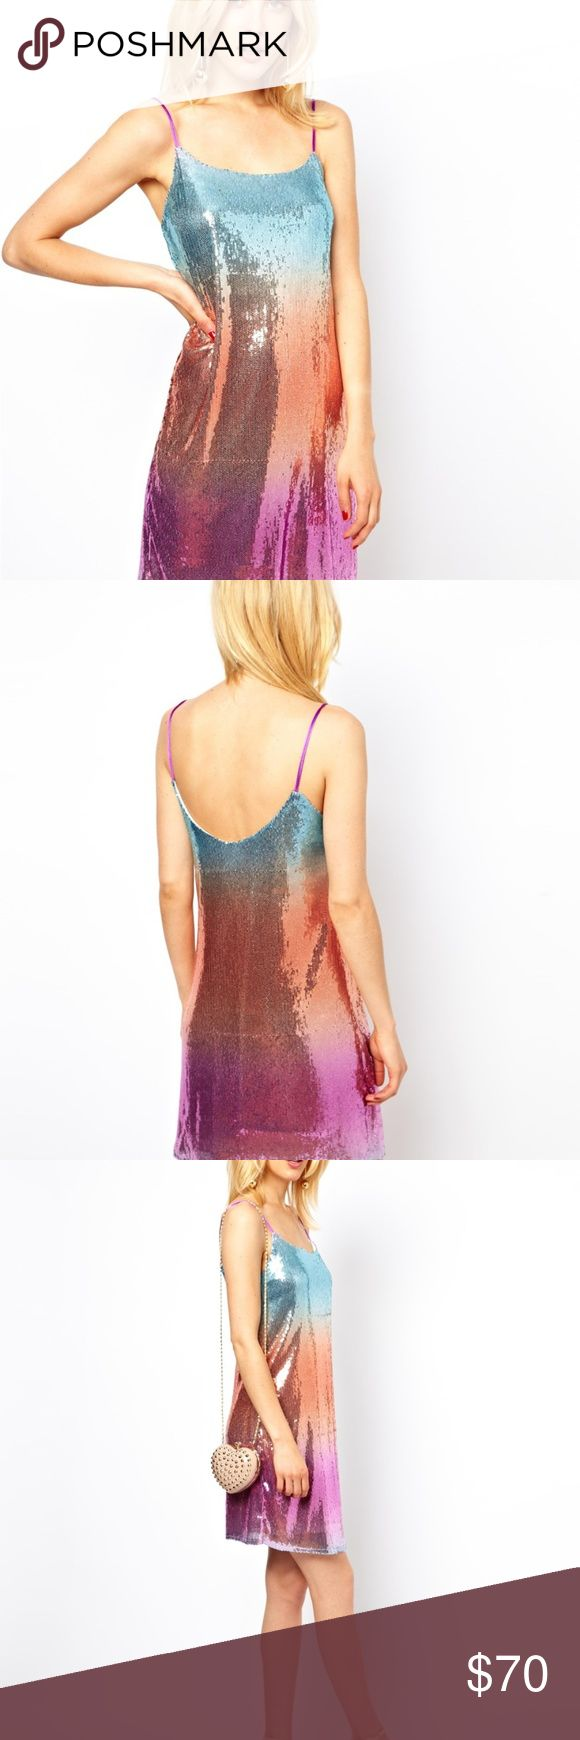 ASOS Petite Rainbow Sequin Cami Dress NWT 8 Petite Size 8 Petite - Asos brand- NWT - Rainbow sequin ombre - Dainty cami straps - NWT - Perfect as a formal dress for a night out, Vegas, a party! ASOS Dresses Prom